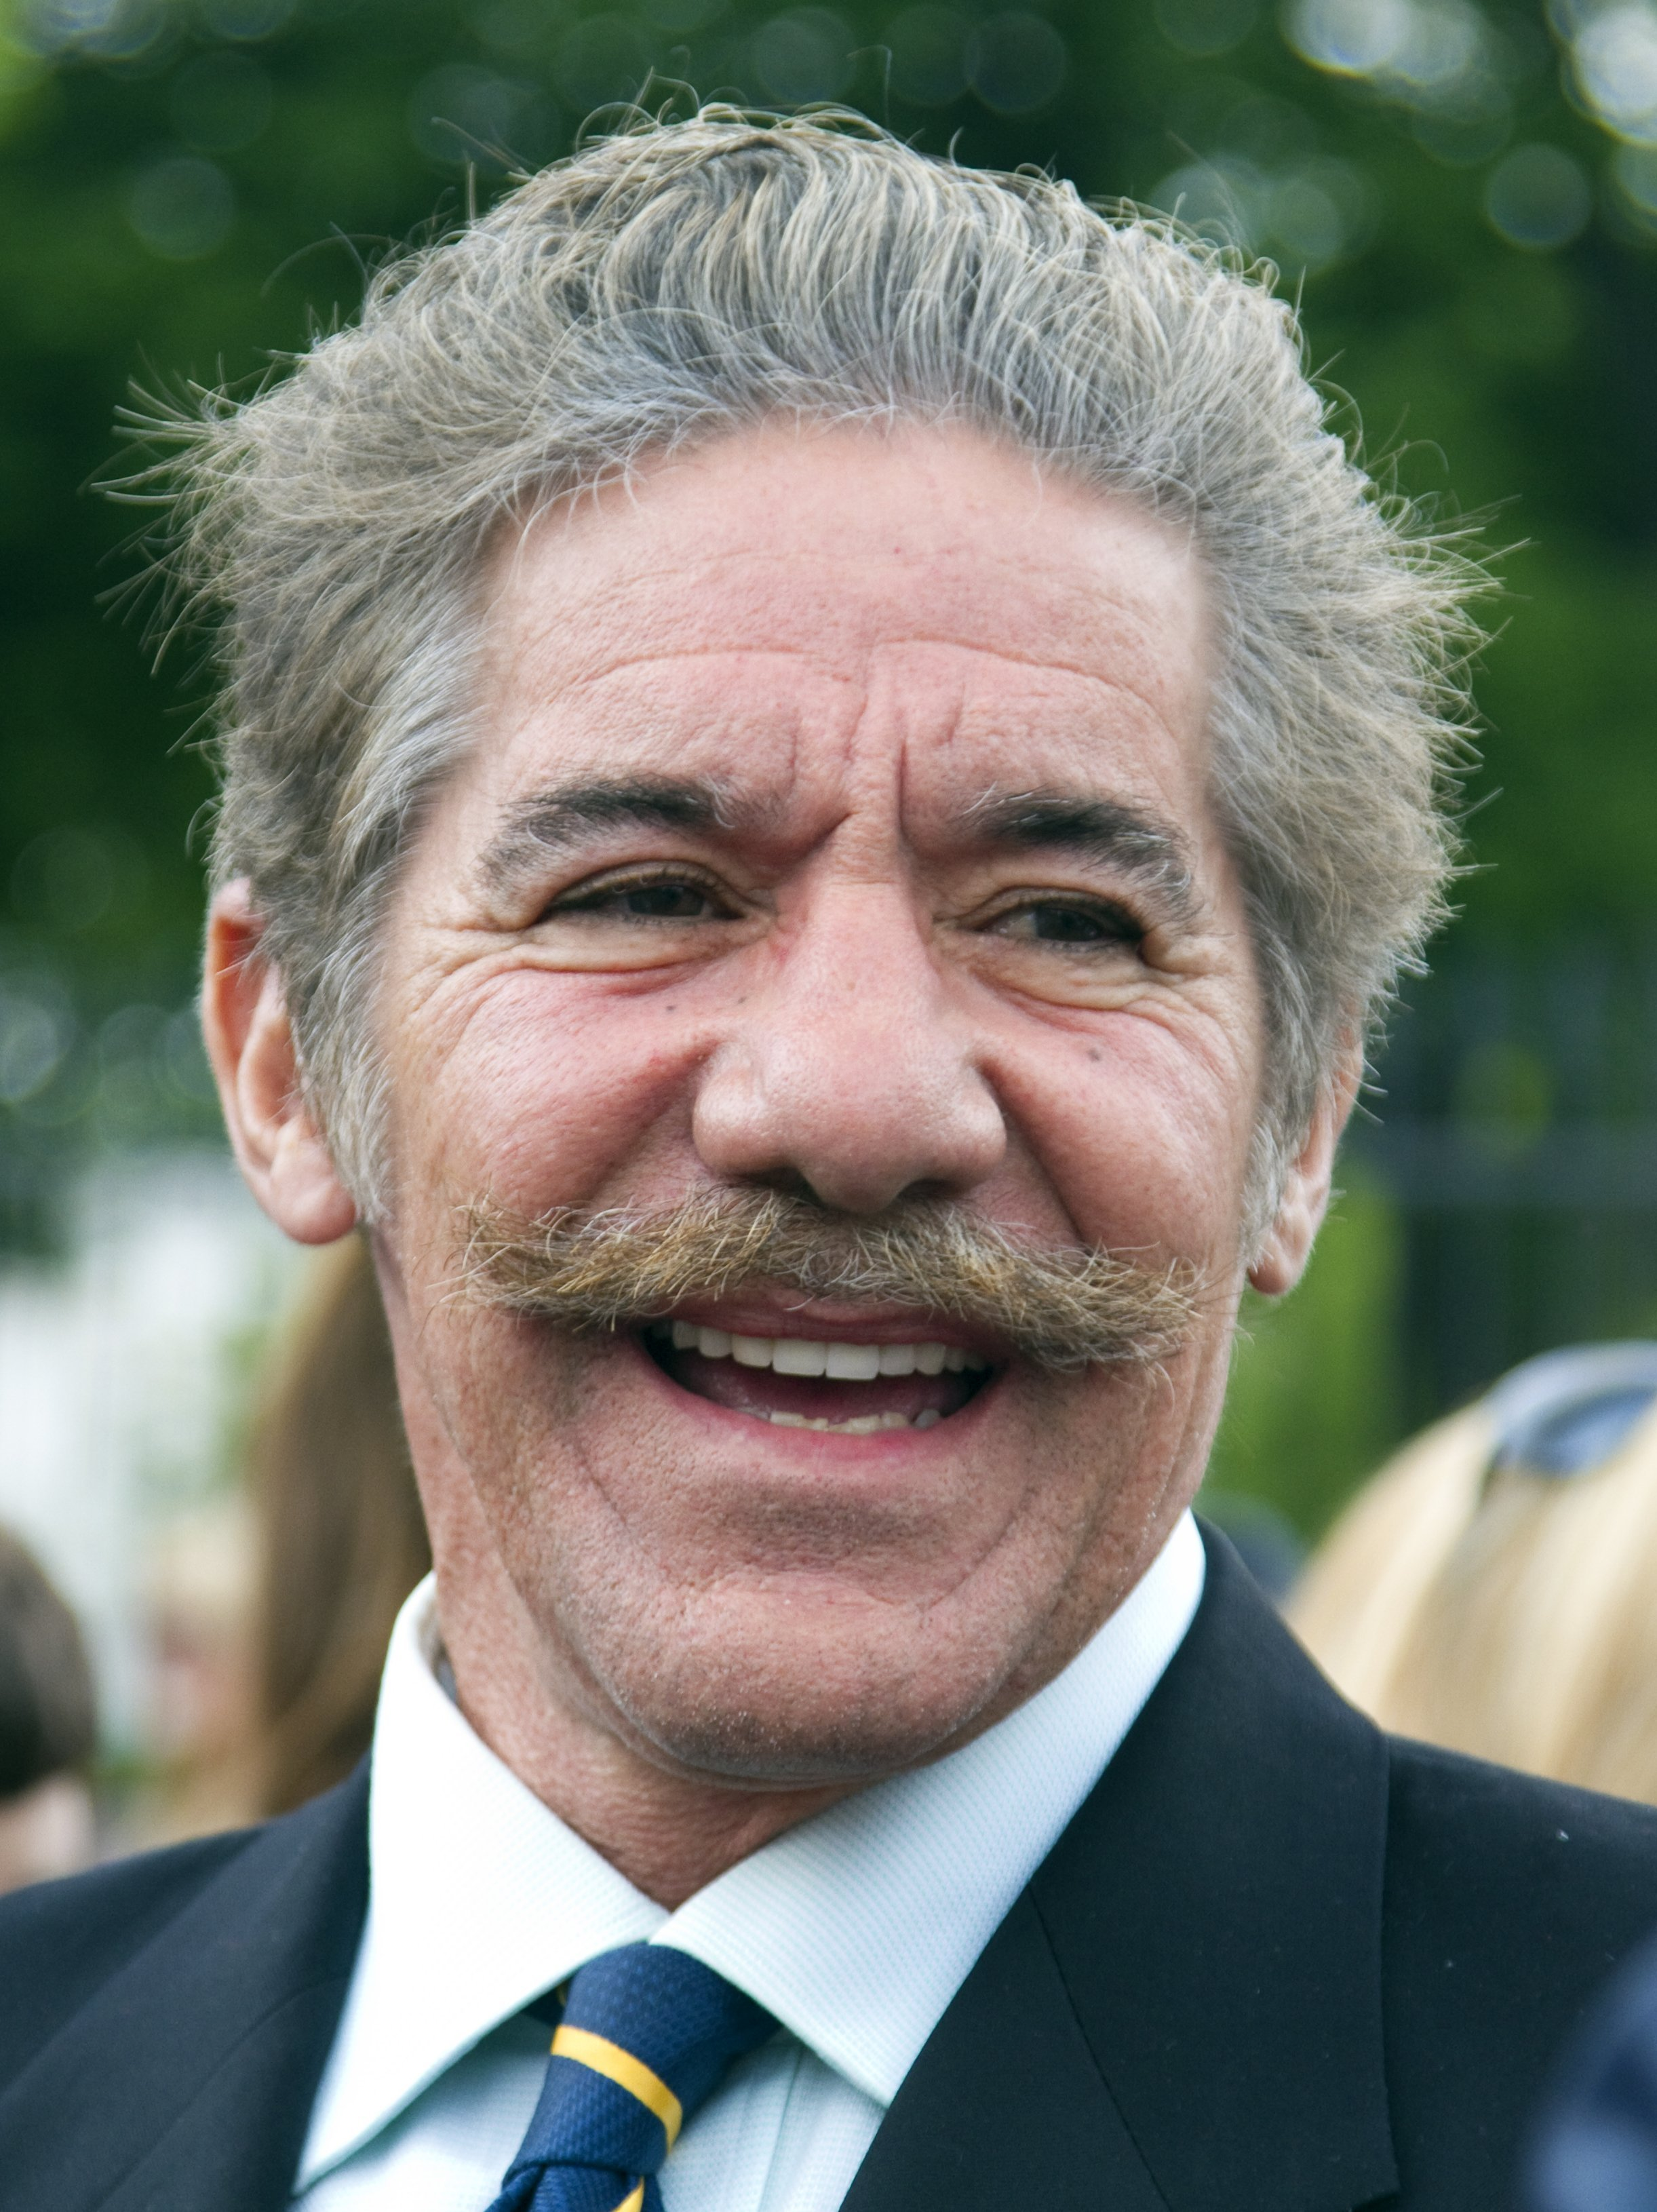 Geraldo Rivera on May 2, 2011 | Source: Wikimedia Commons